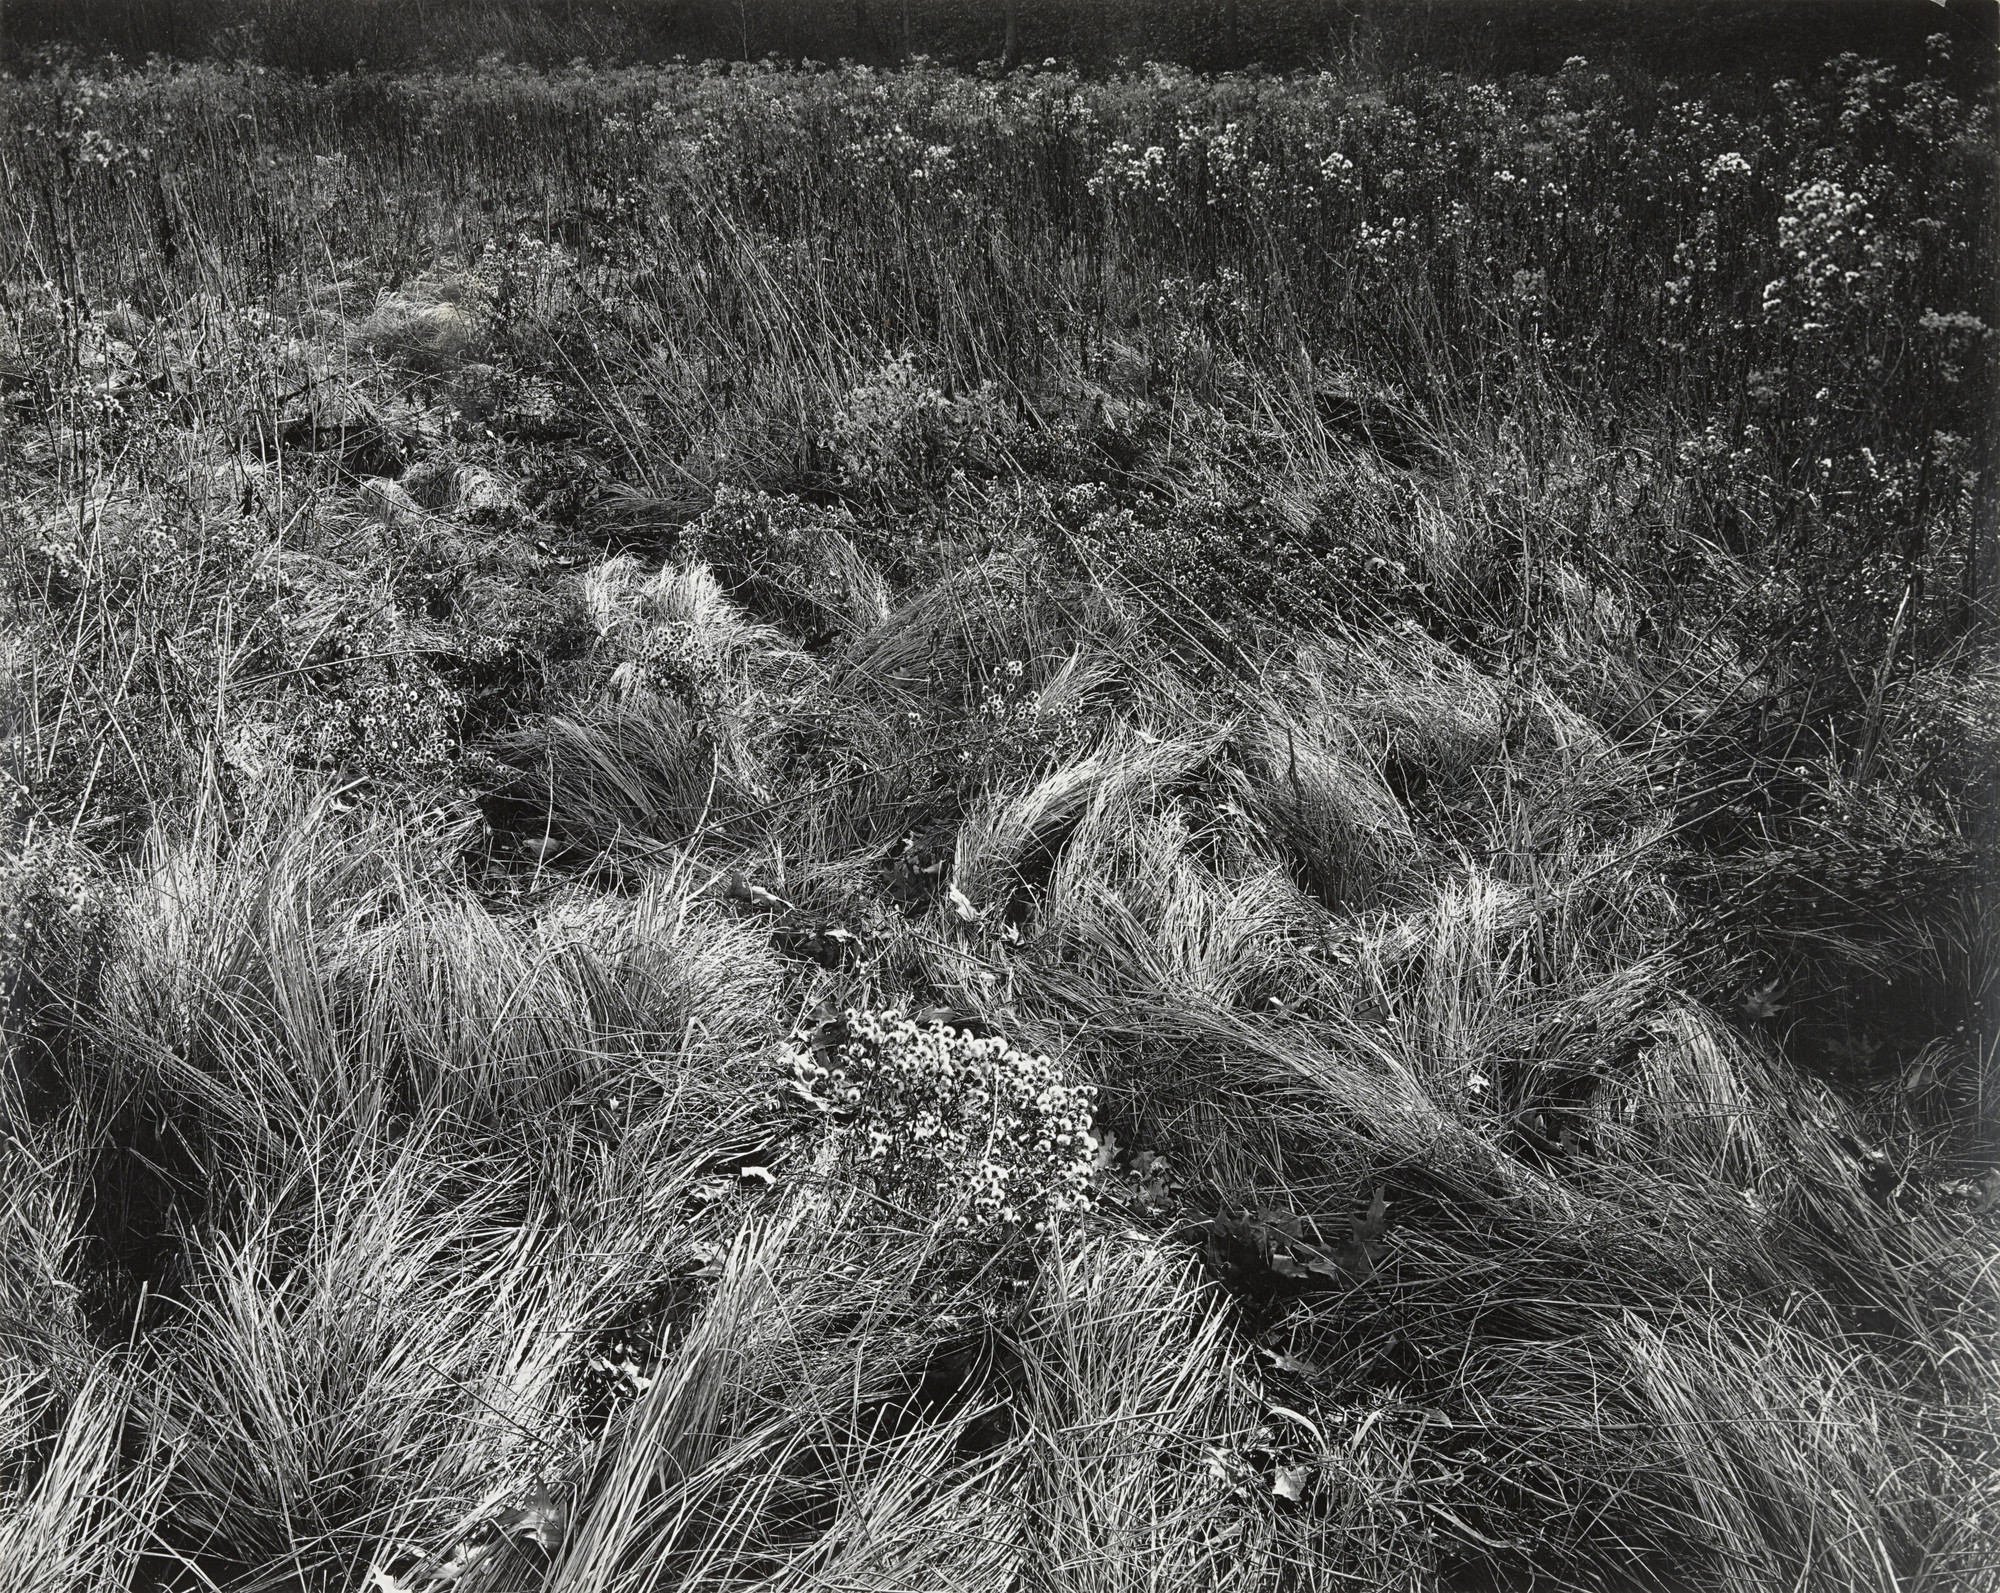 Harry Callahan. Michigan. c. 1950